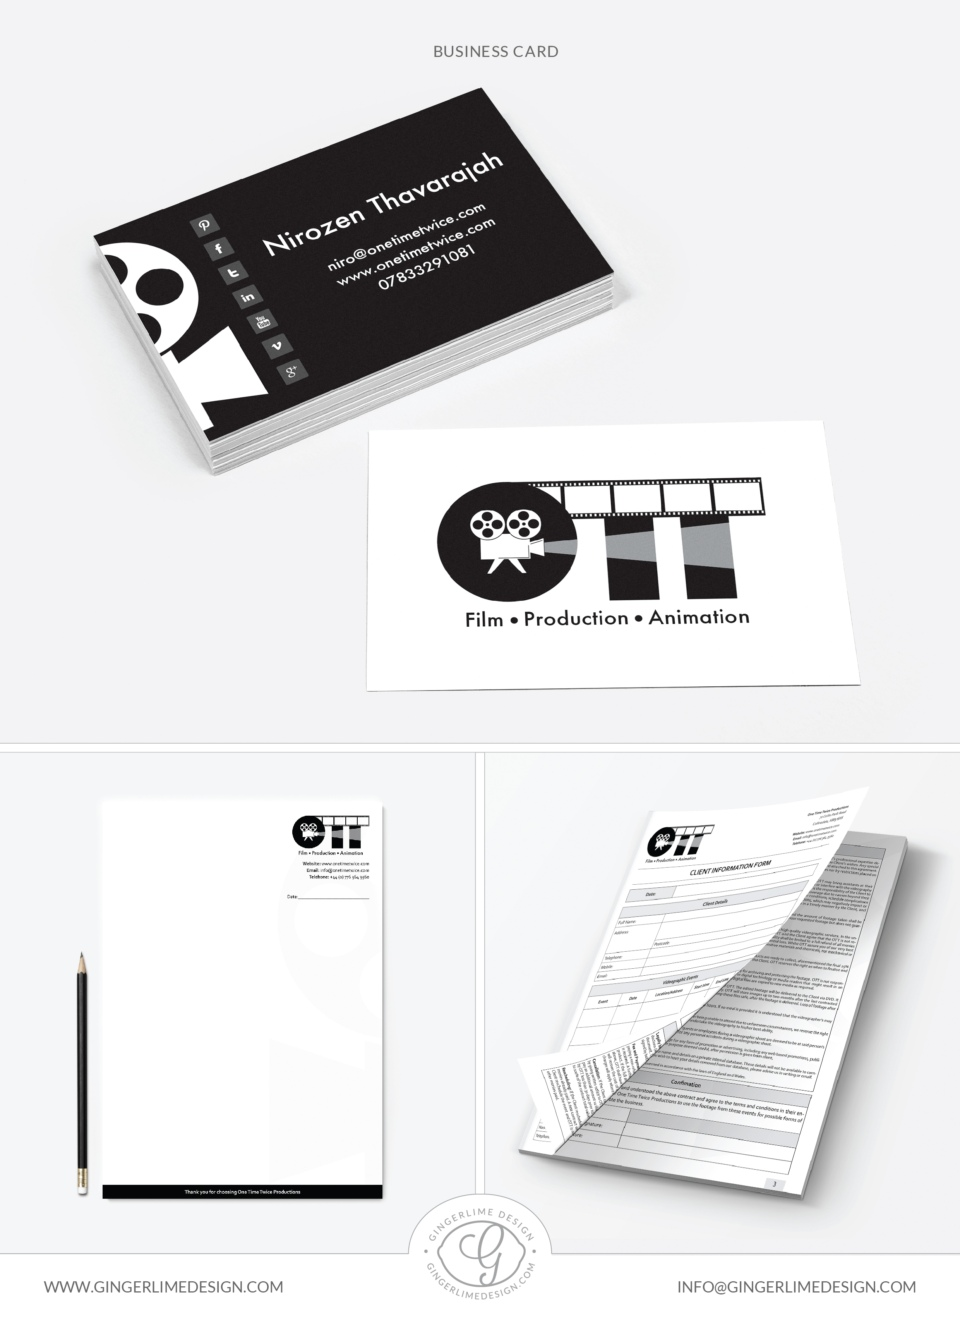 One Time Twice Branding Project by Gingerlime Design